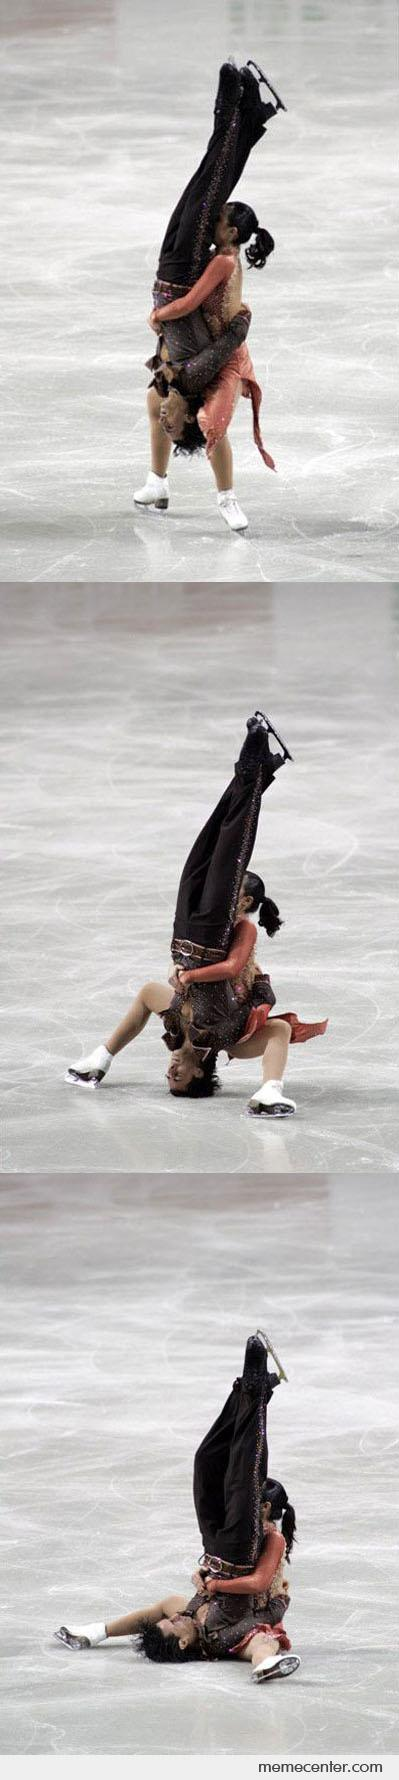 Consequences of feminism in figure skating.